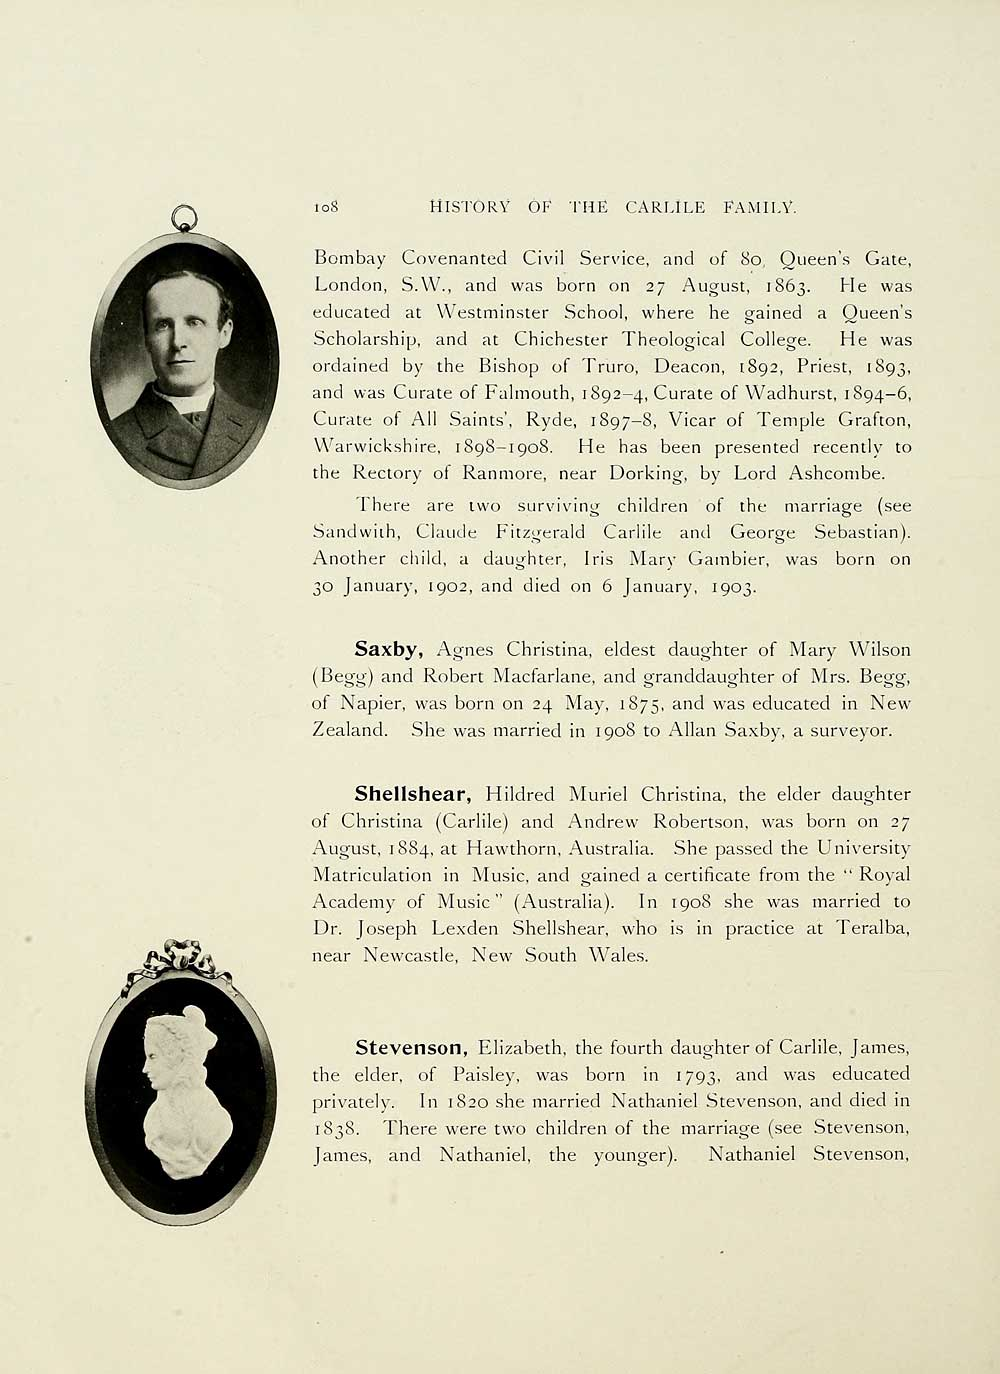 162) Page 108 - History of the Carlile family - Histories of